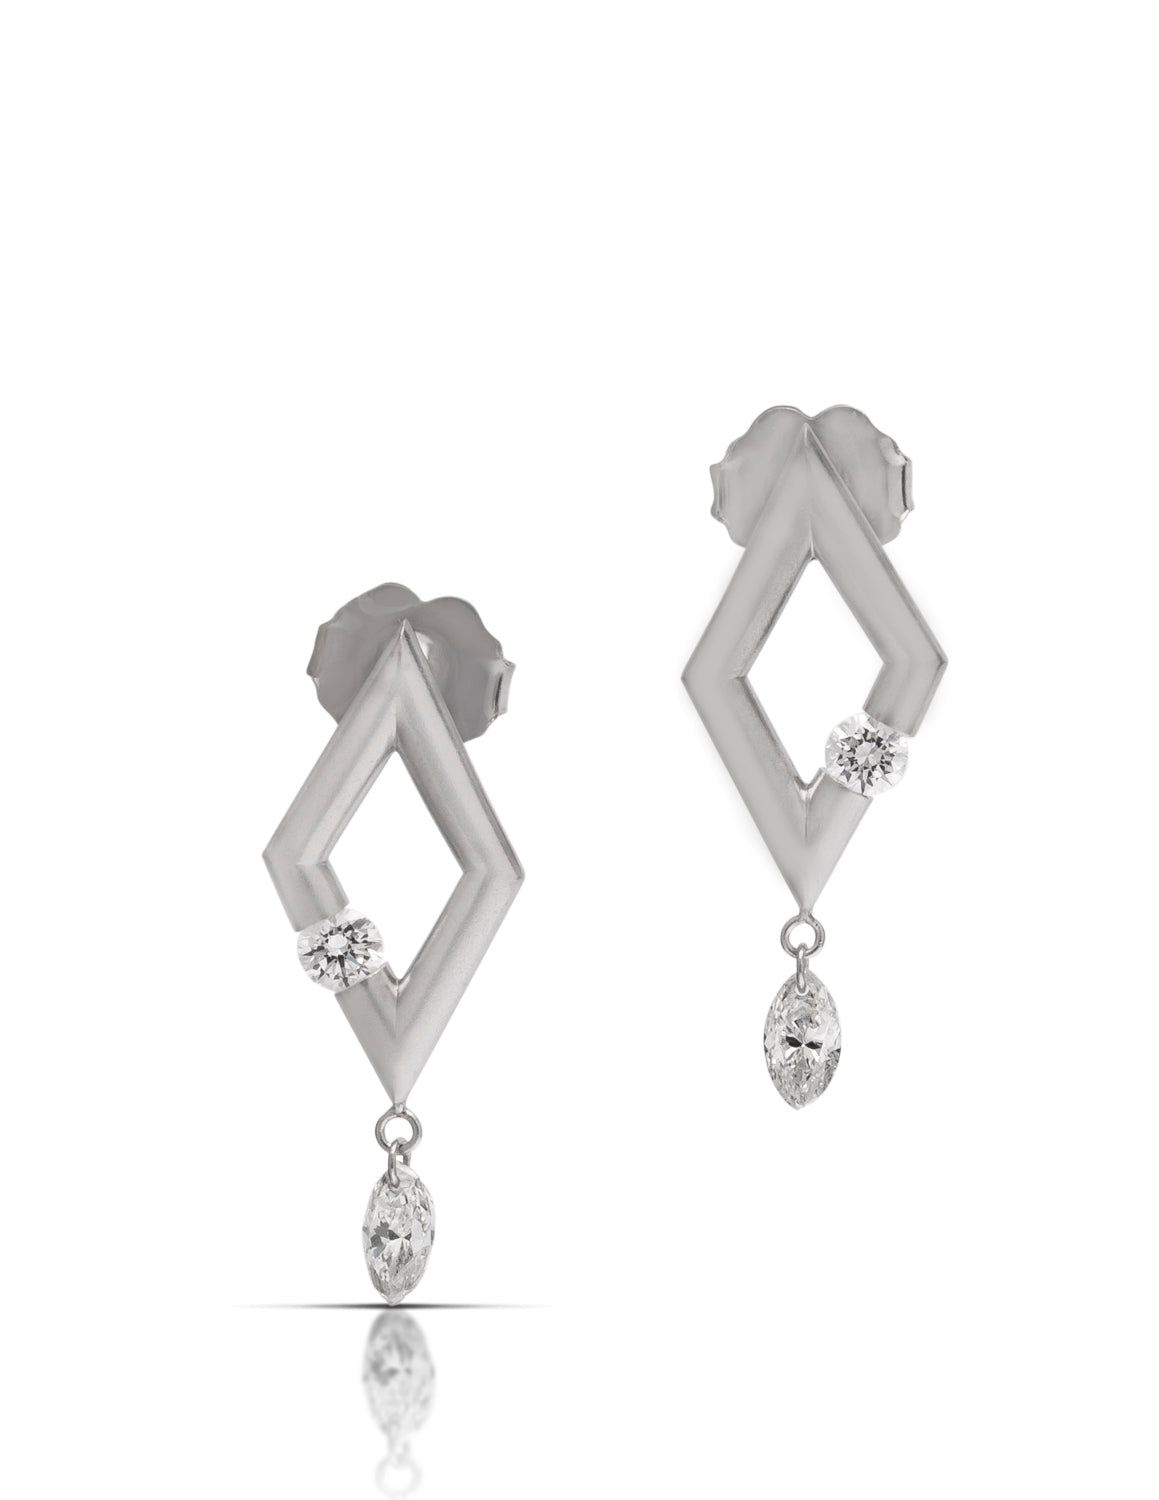 Diamond Shaped Platinum Earrings with Dancing Diamonds - Charles Koll Jewellers